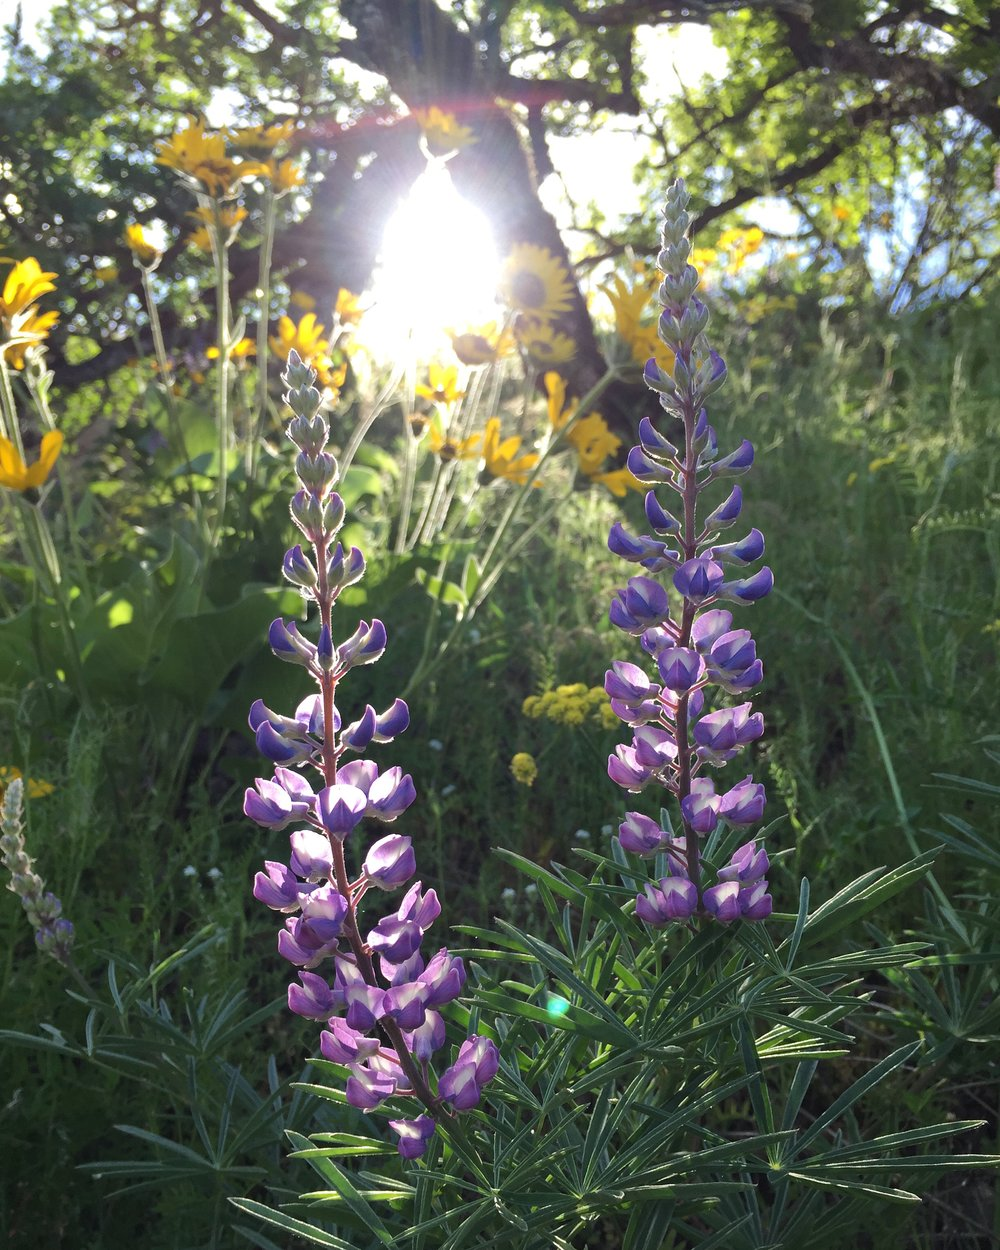 After the Mount St. Helens eruption of 1980, lupine was the first species to take root in the ashes of that massive disturbance event, followed by fireweed, and other early successional species that helped create evermore habitable conditions for other species of annuals, perennials, shrubs, and trees over time.